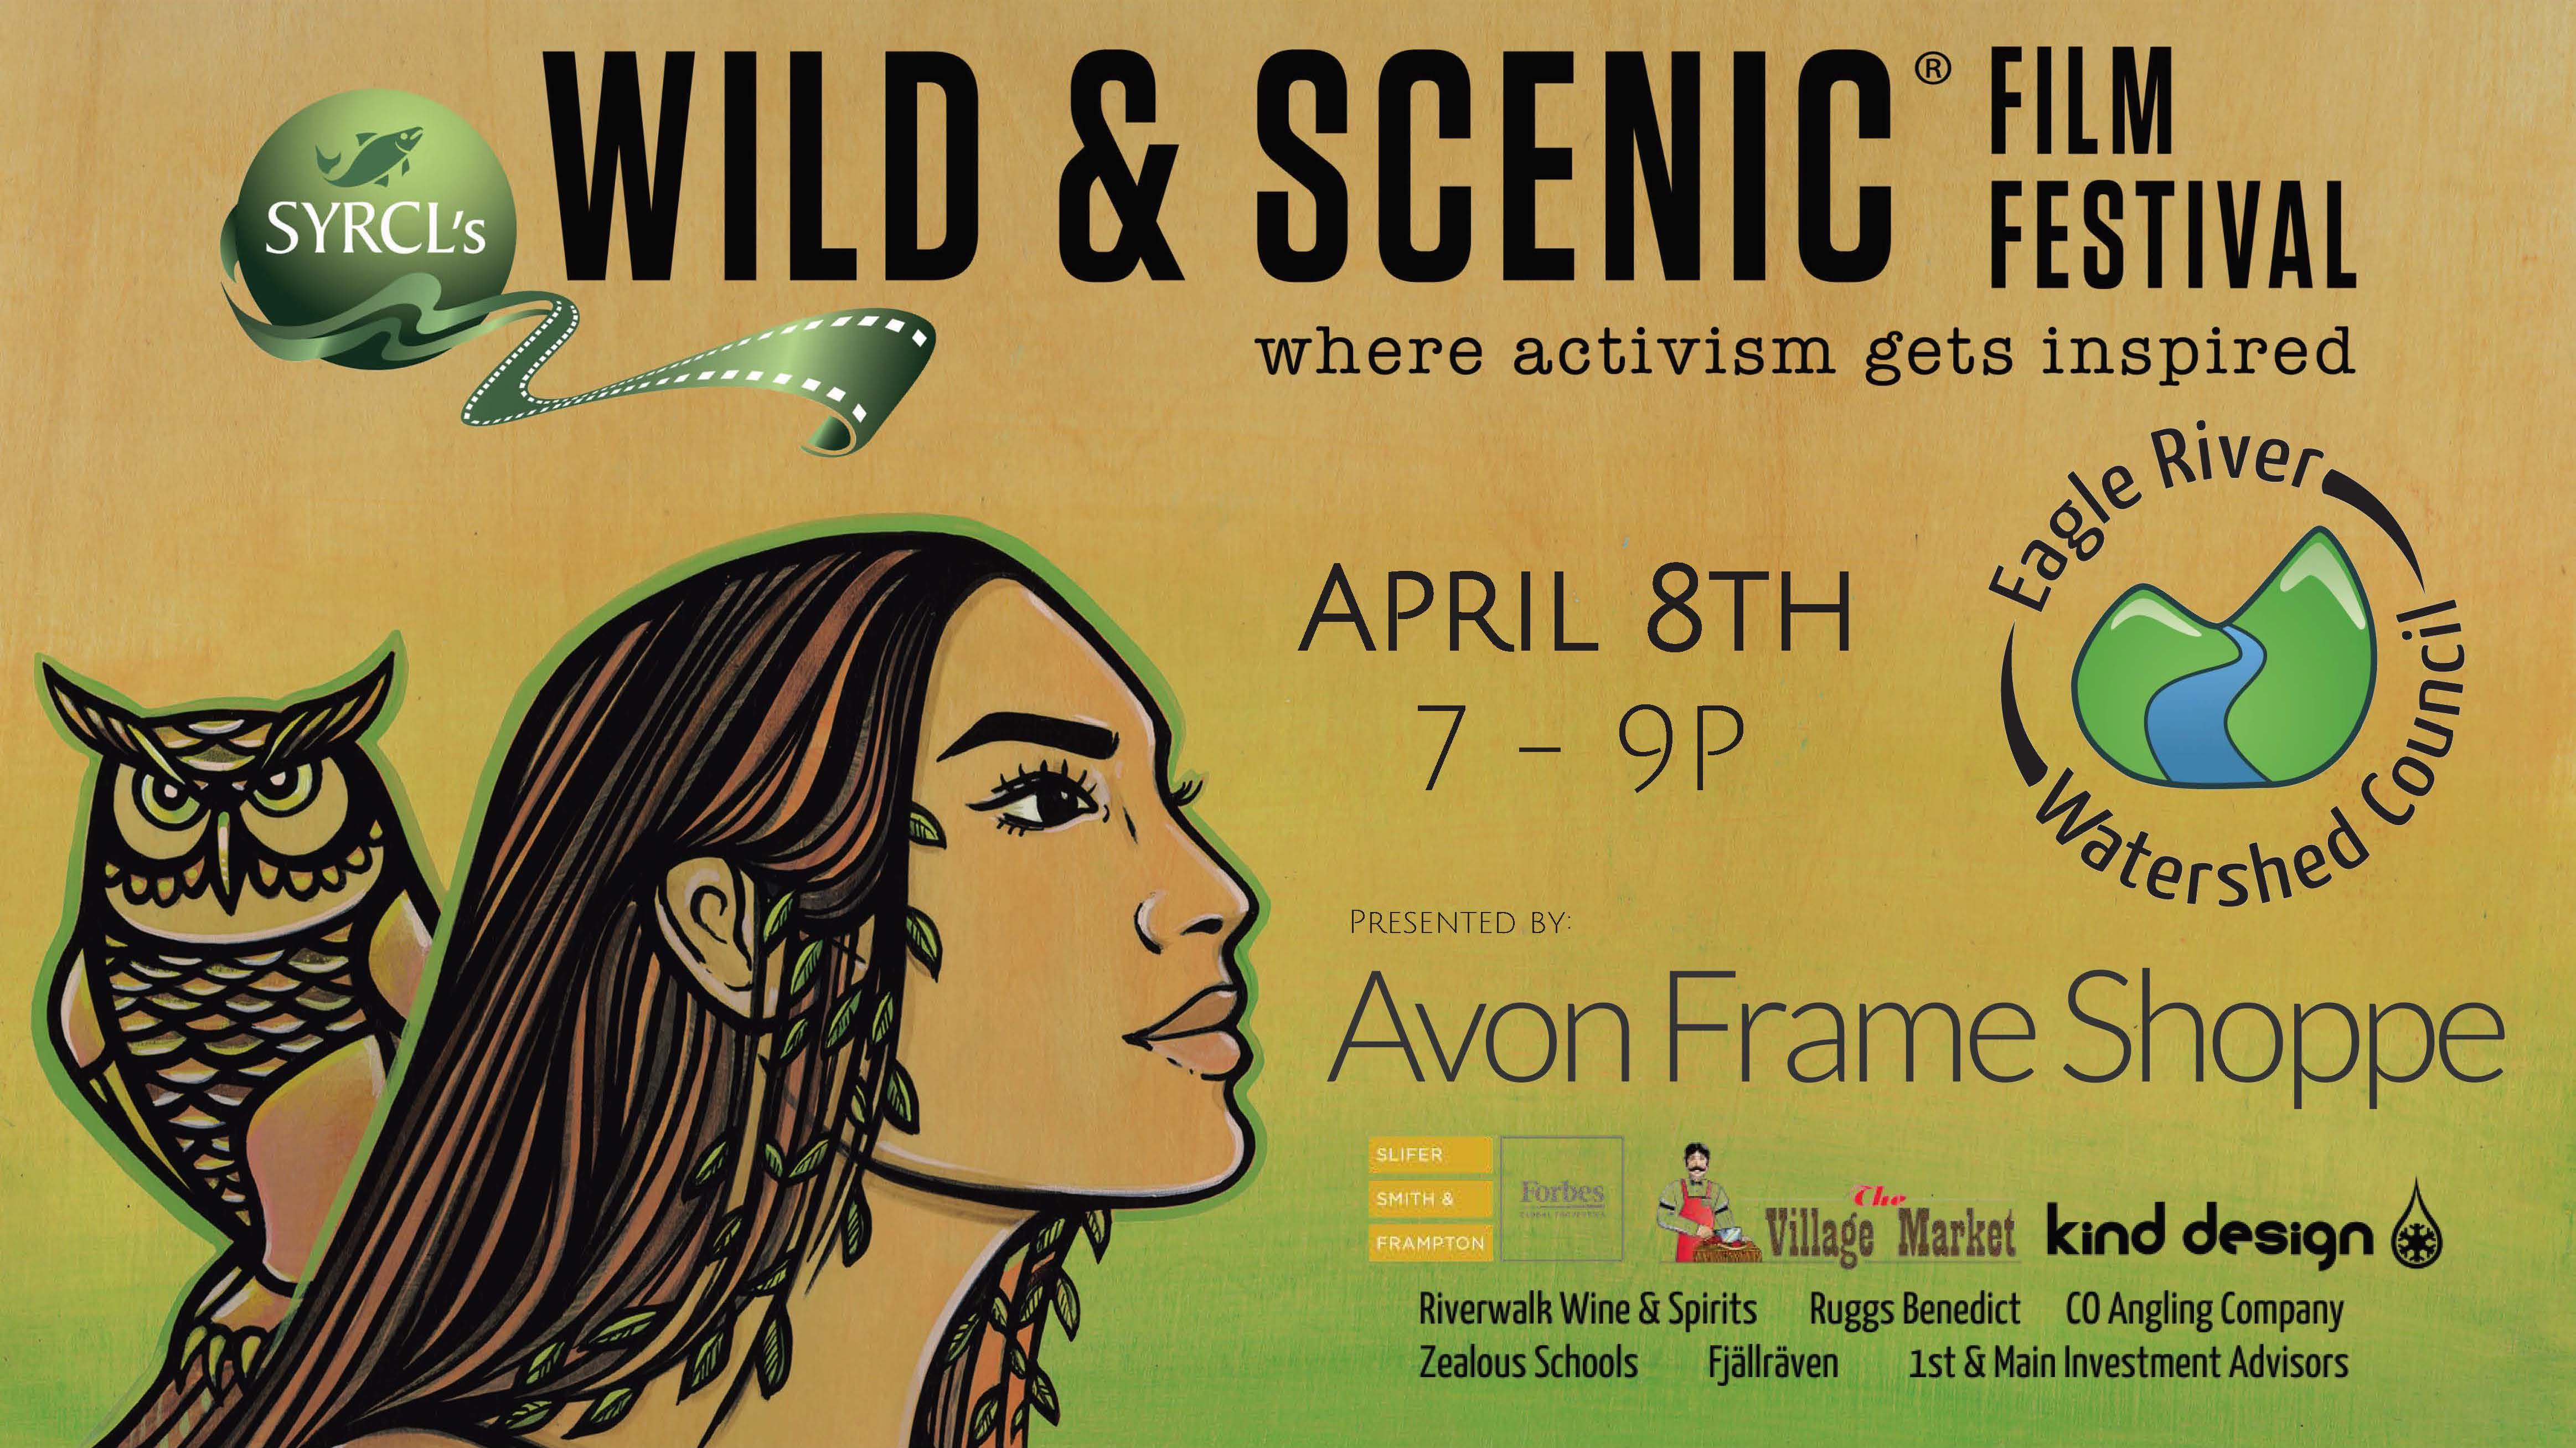 Eagle River Watershed Council Presents SYRCL's Wild & Scenic Film Festival On Tour